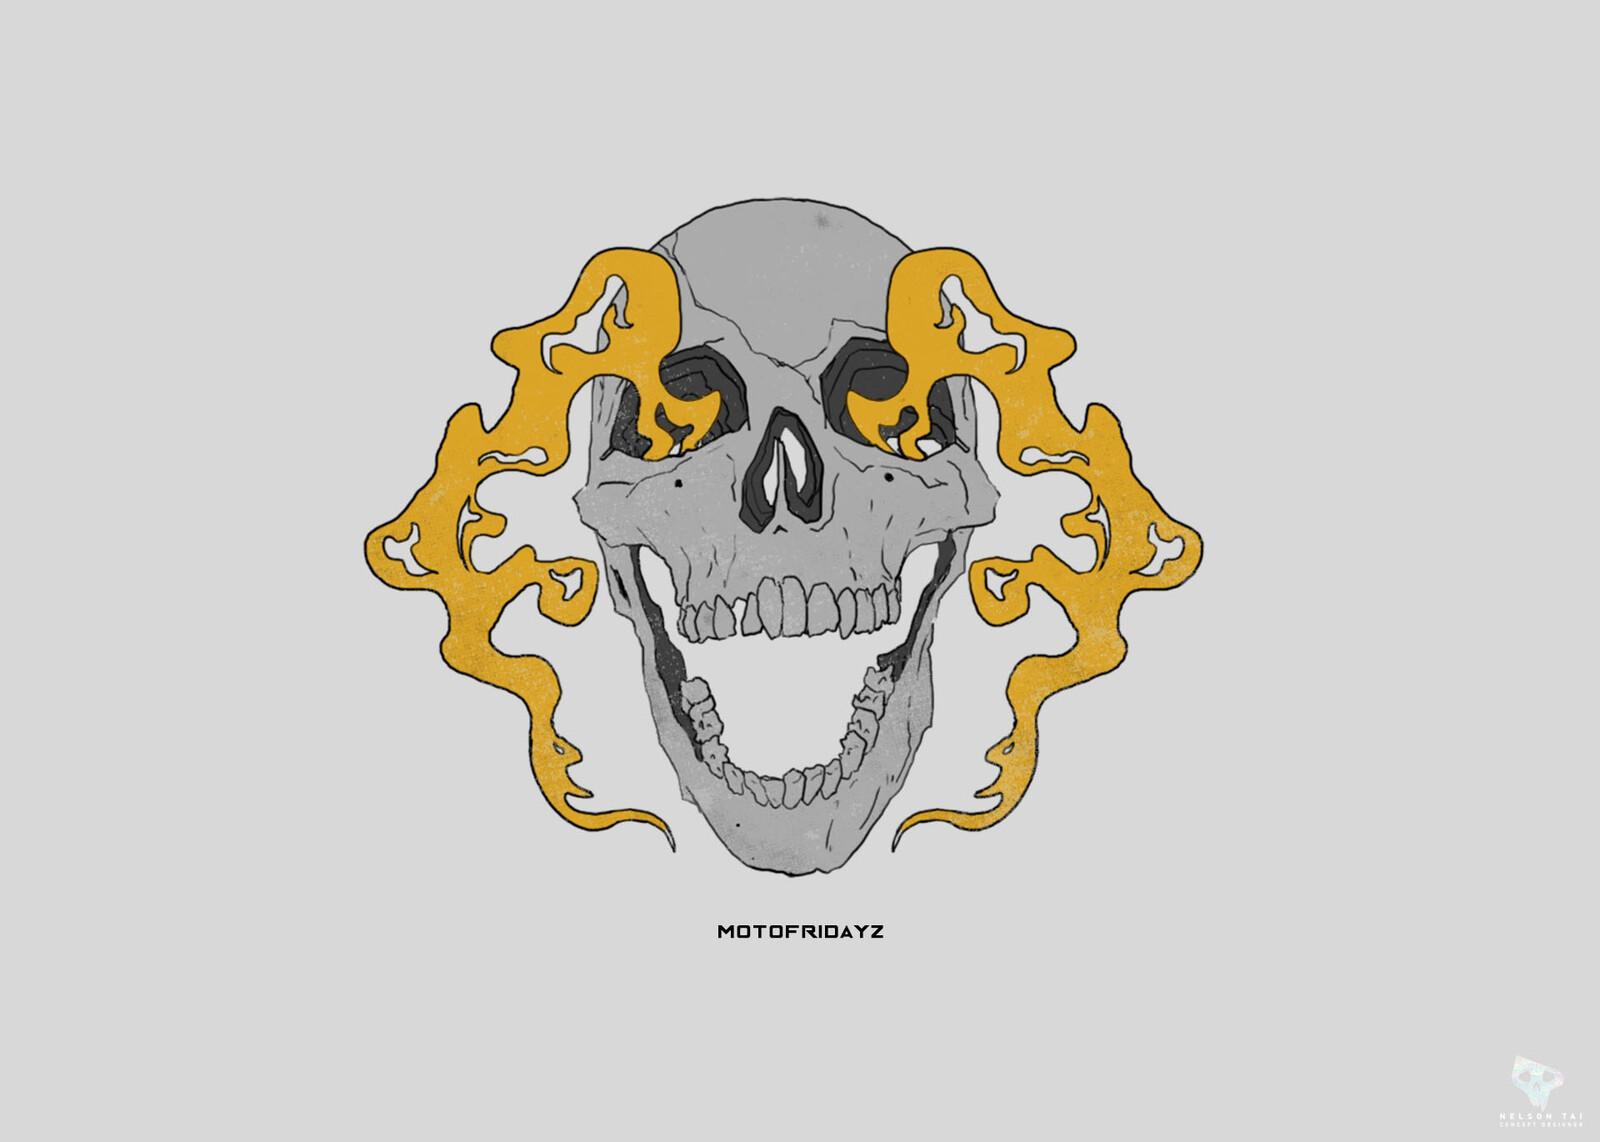 motofridayz smokin skull graphic